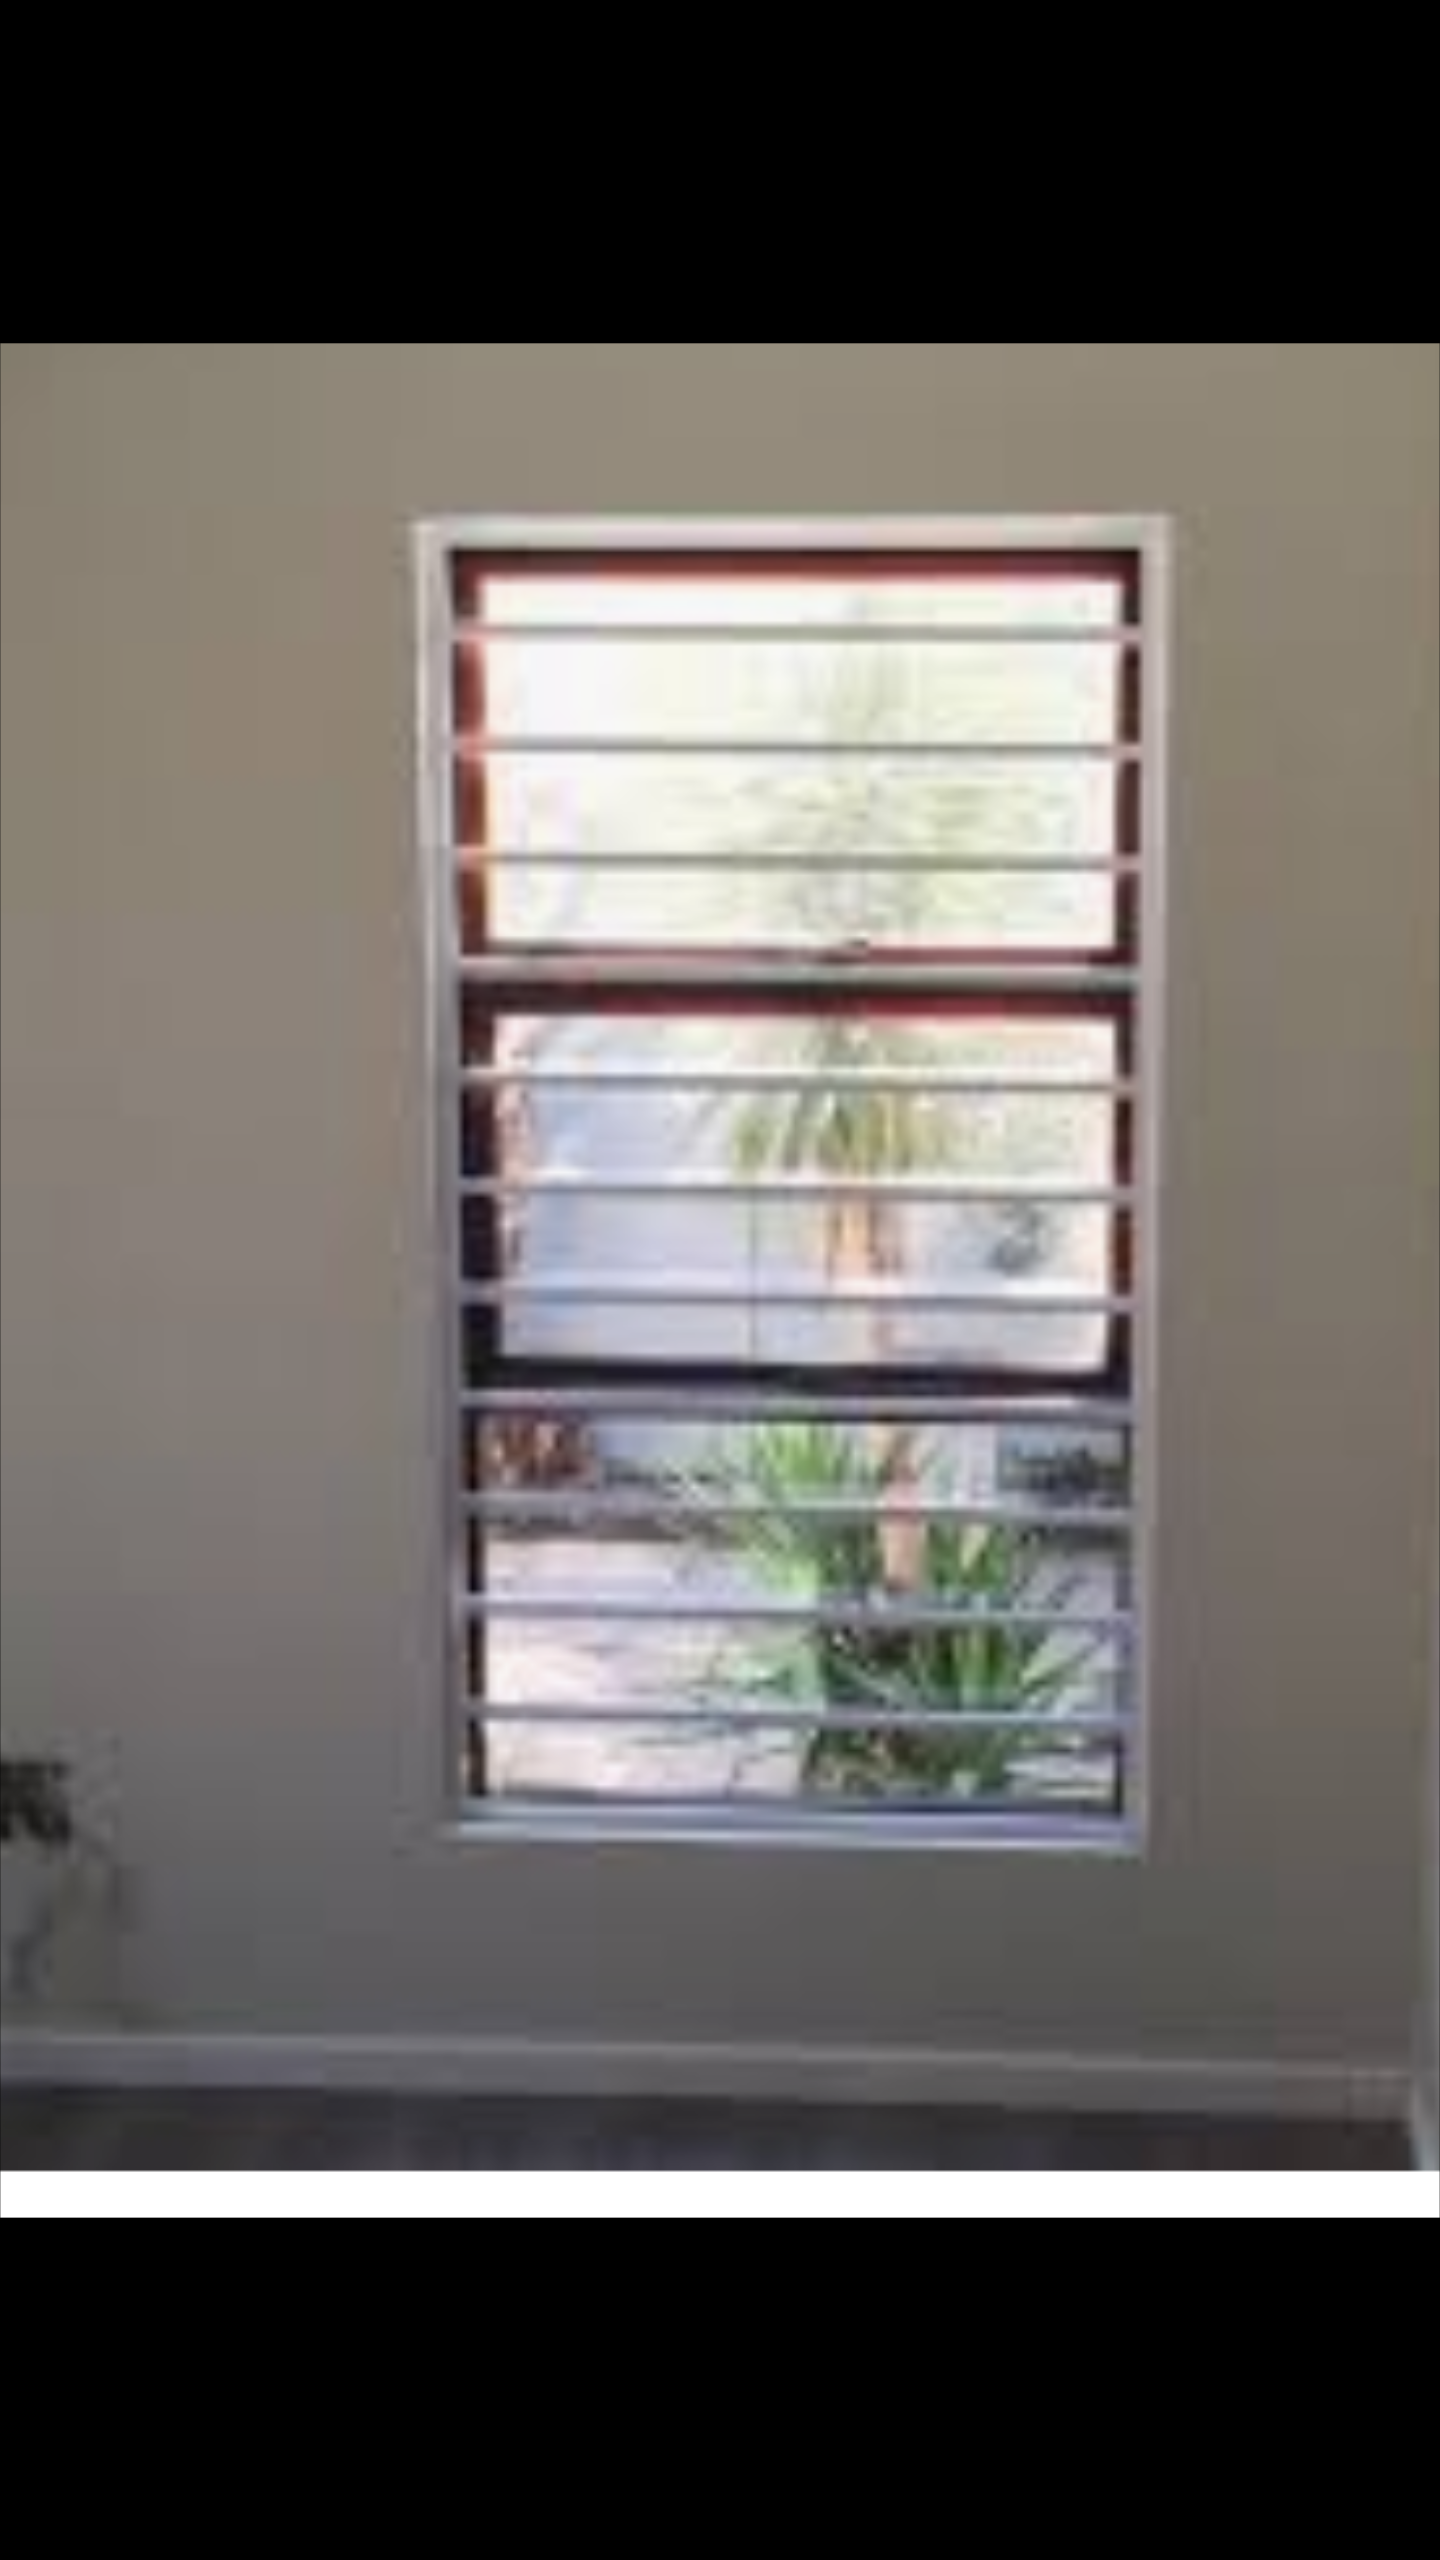 Horizontal Burglar Bars hides neatly behind Horizontal Blinds